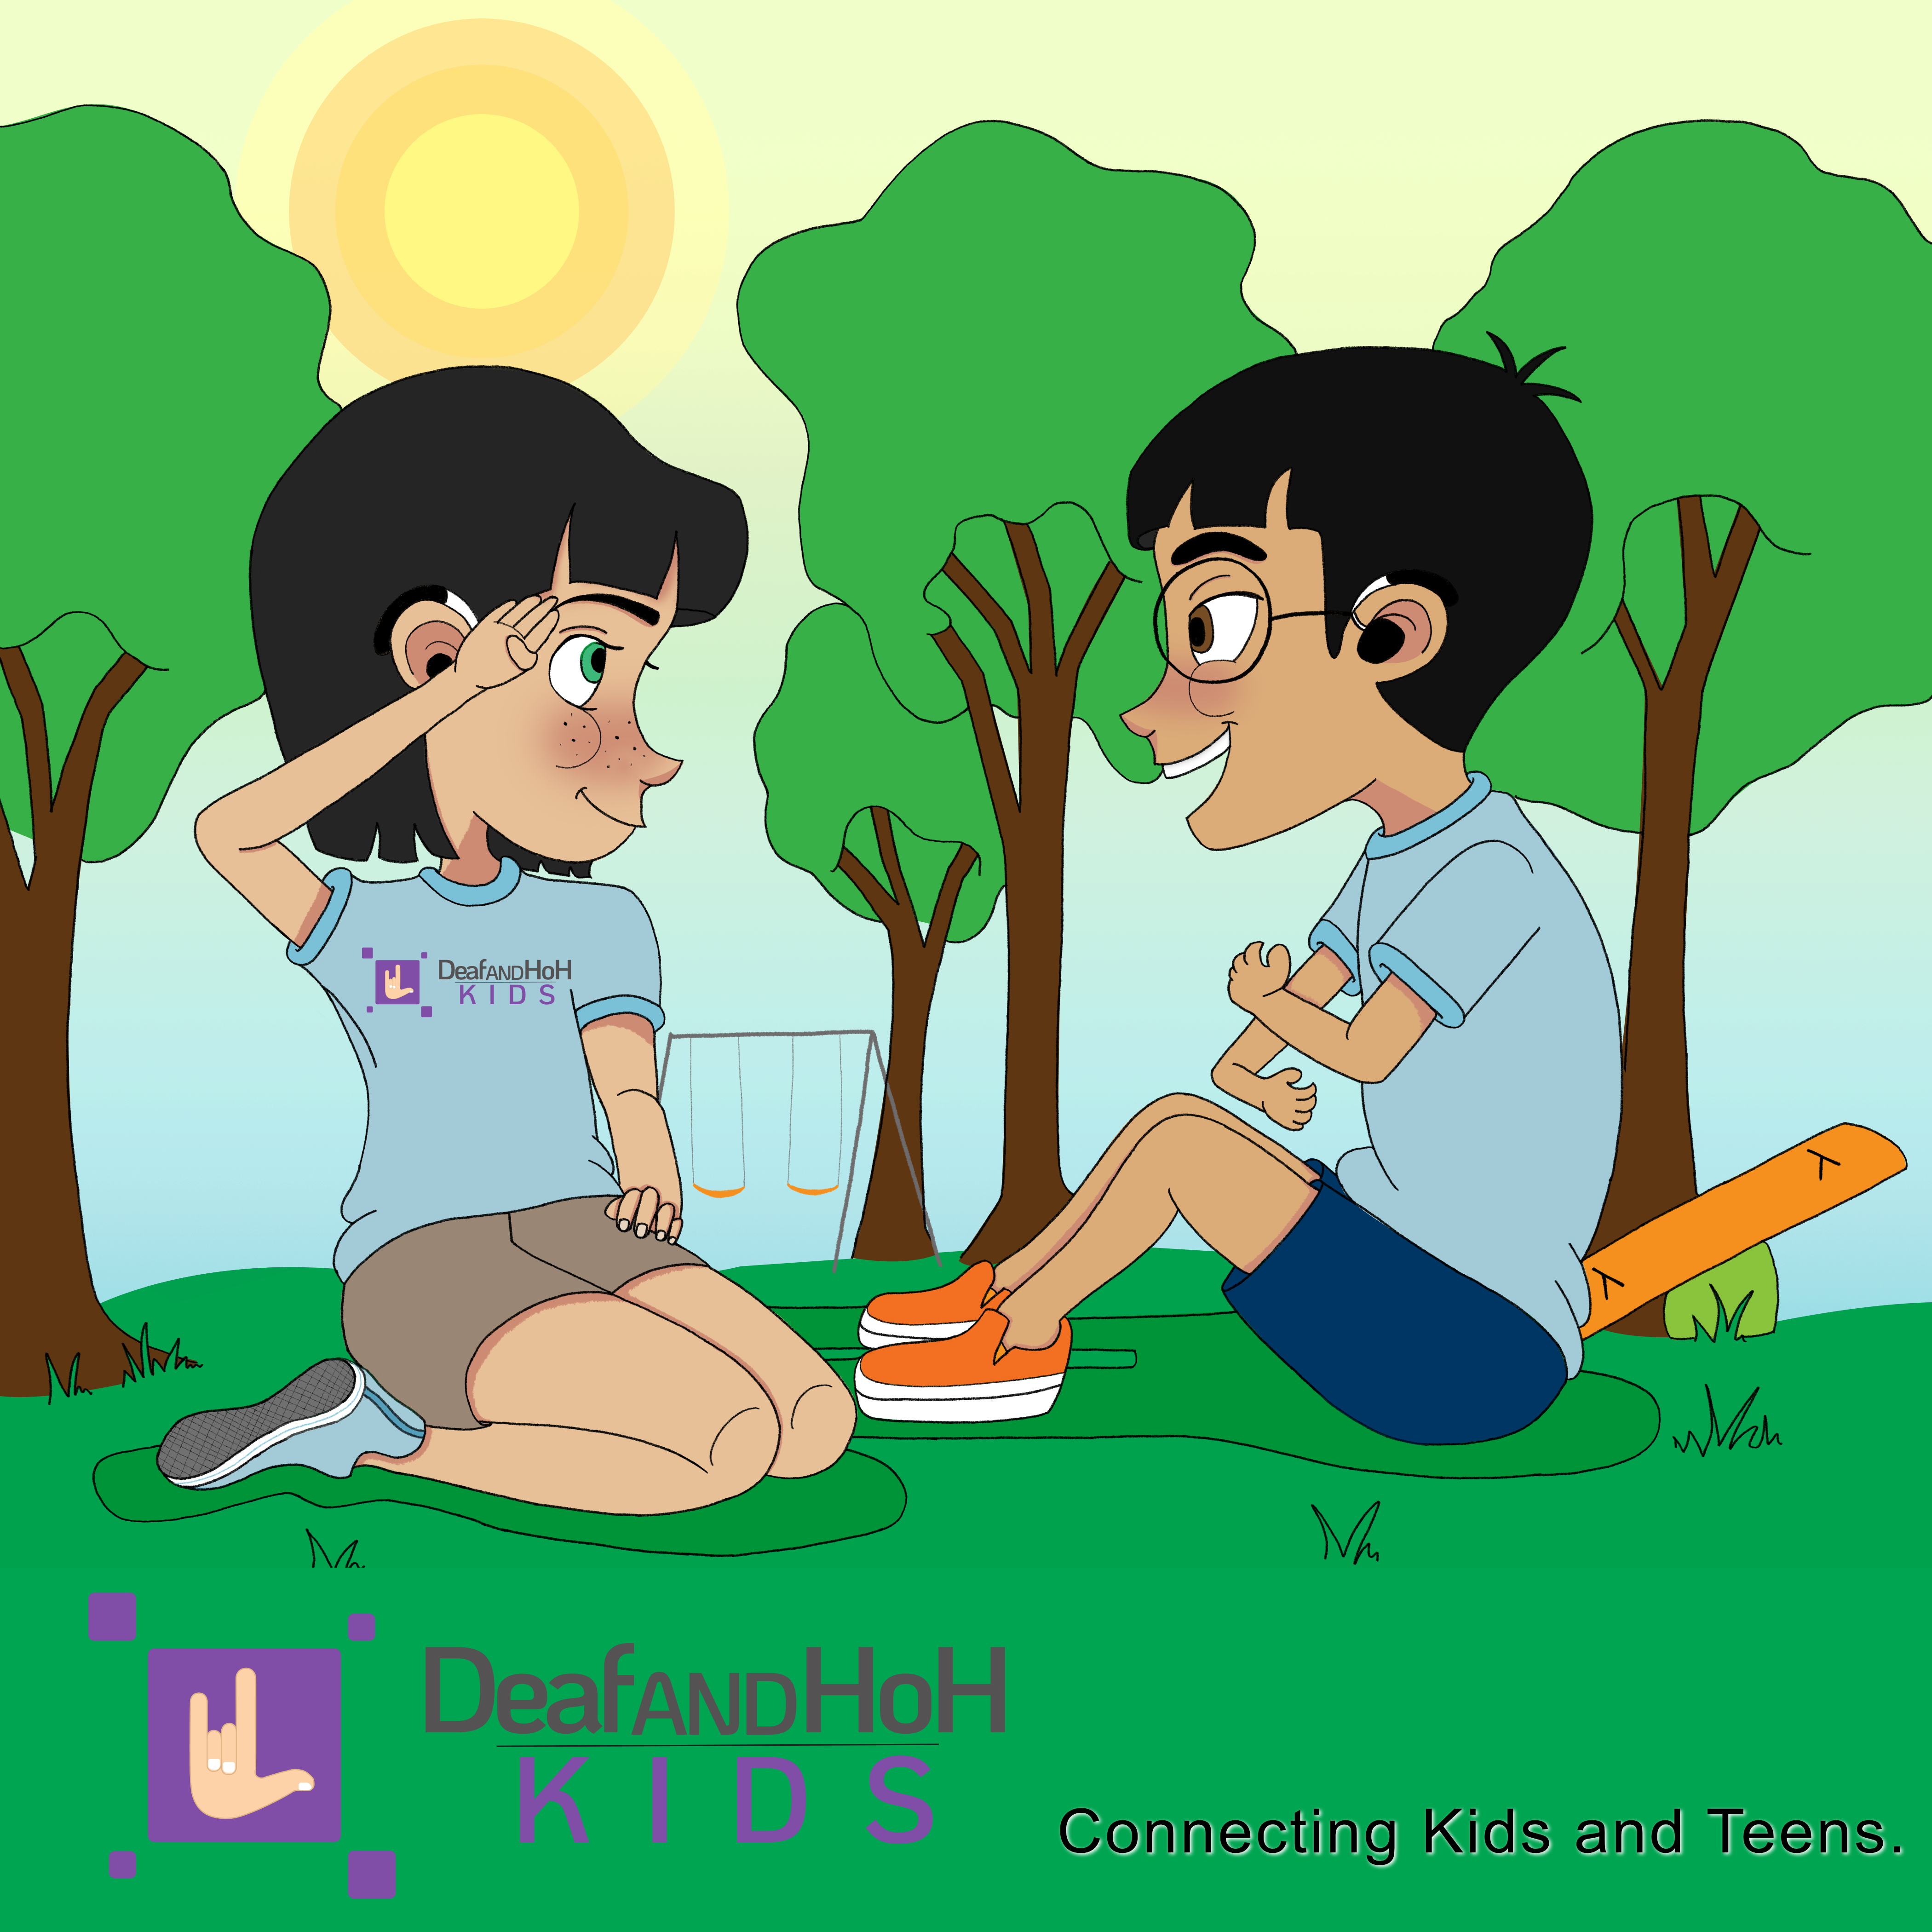 DeafandHoH.com Kids - connecting kids and teens